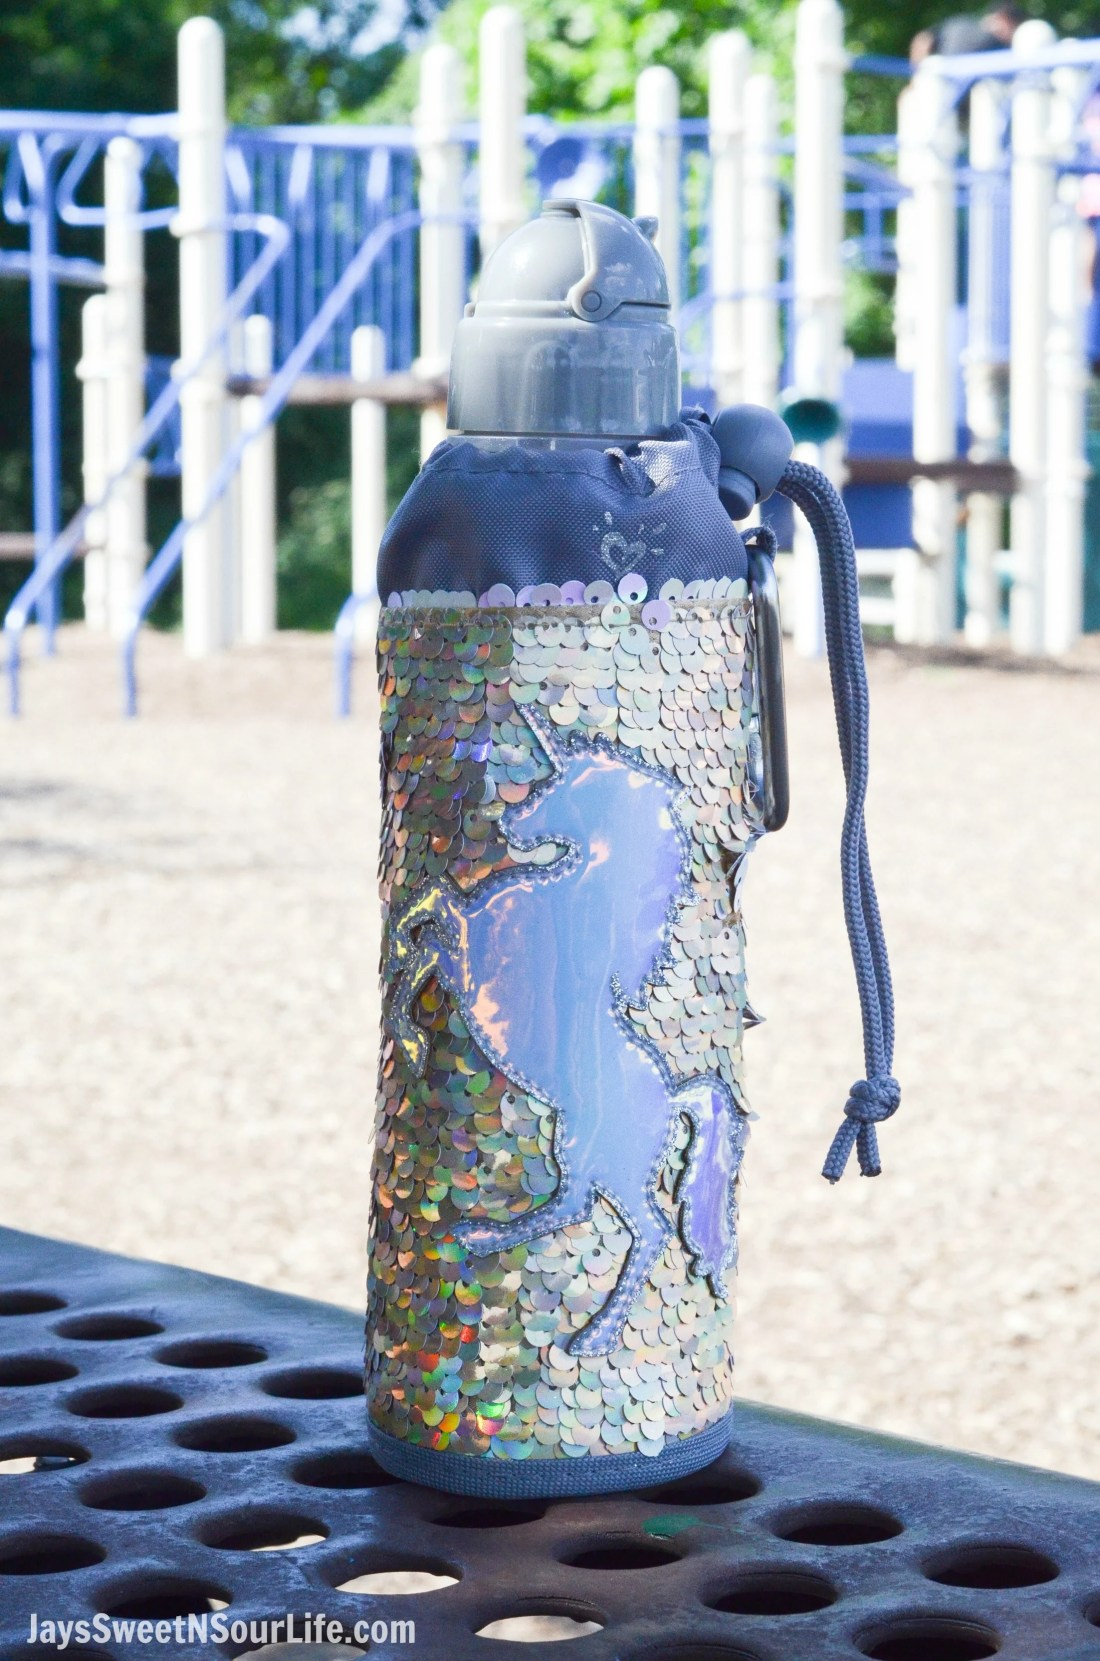 Justice Back To School Unicorn Waterbottle. Back To School Must Have Fashion For Tweens via JaysSweetNSourLife.com